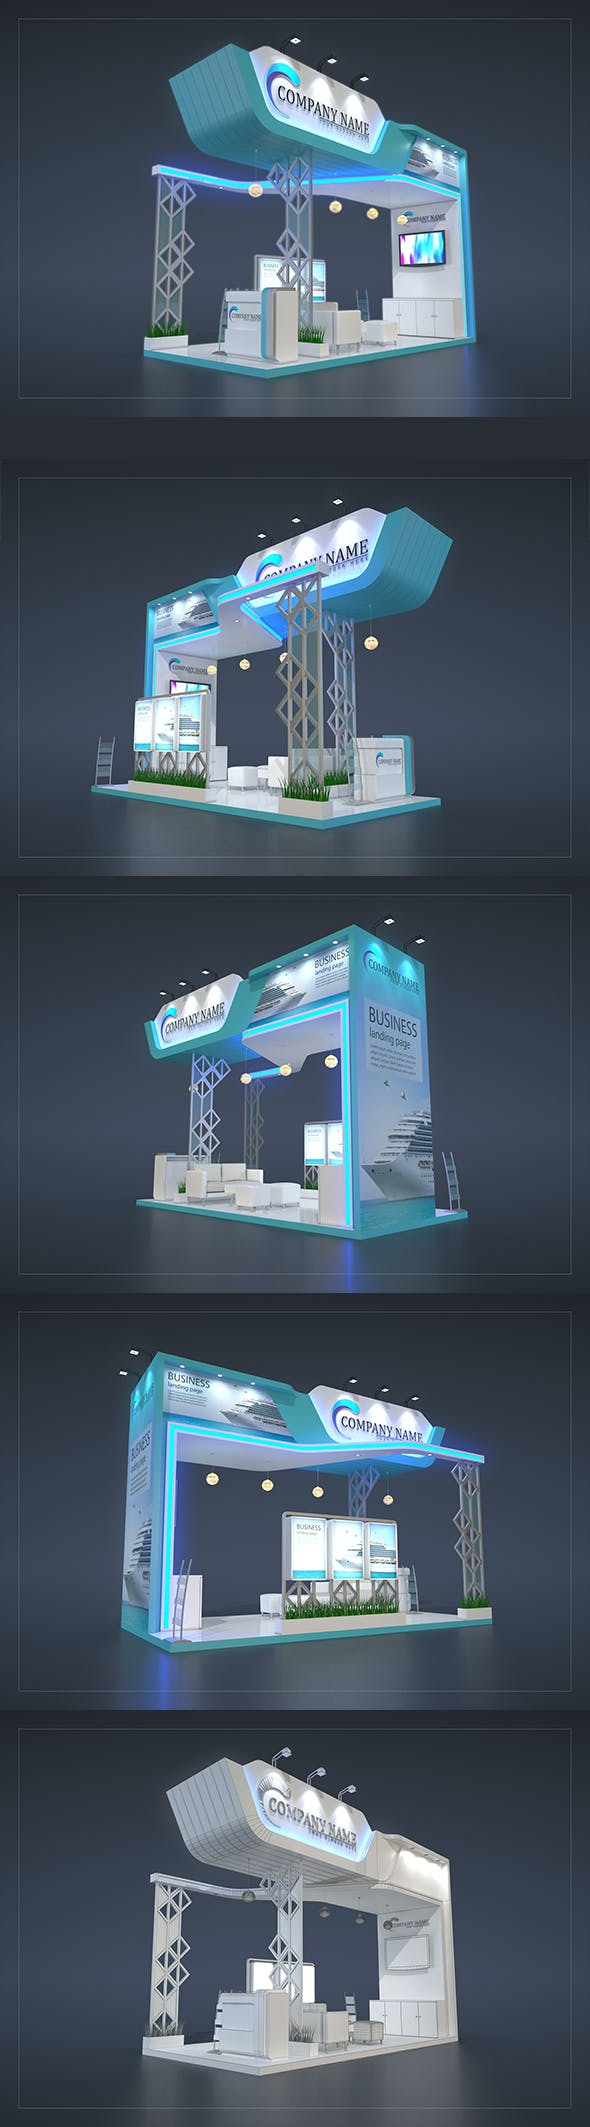 EXHIBITION STAND PR - 3DOcean Item for Sale